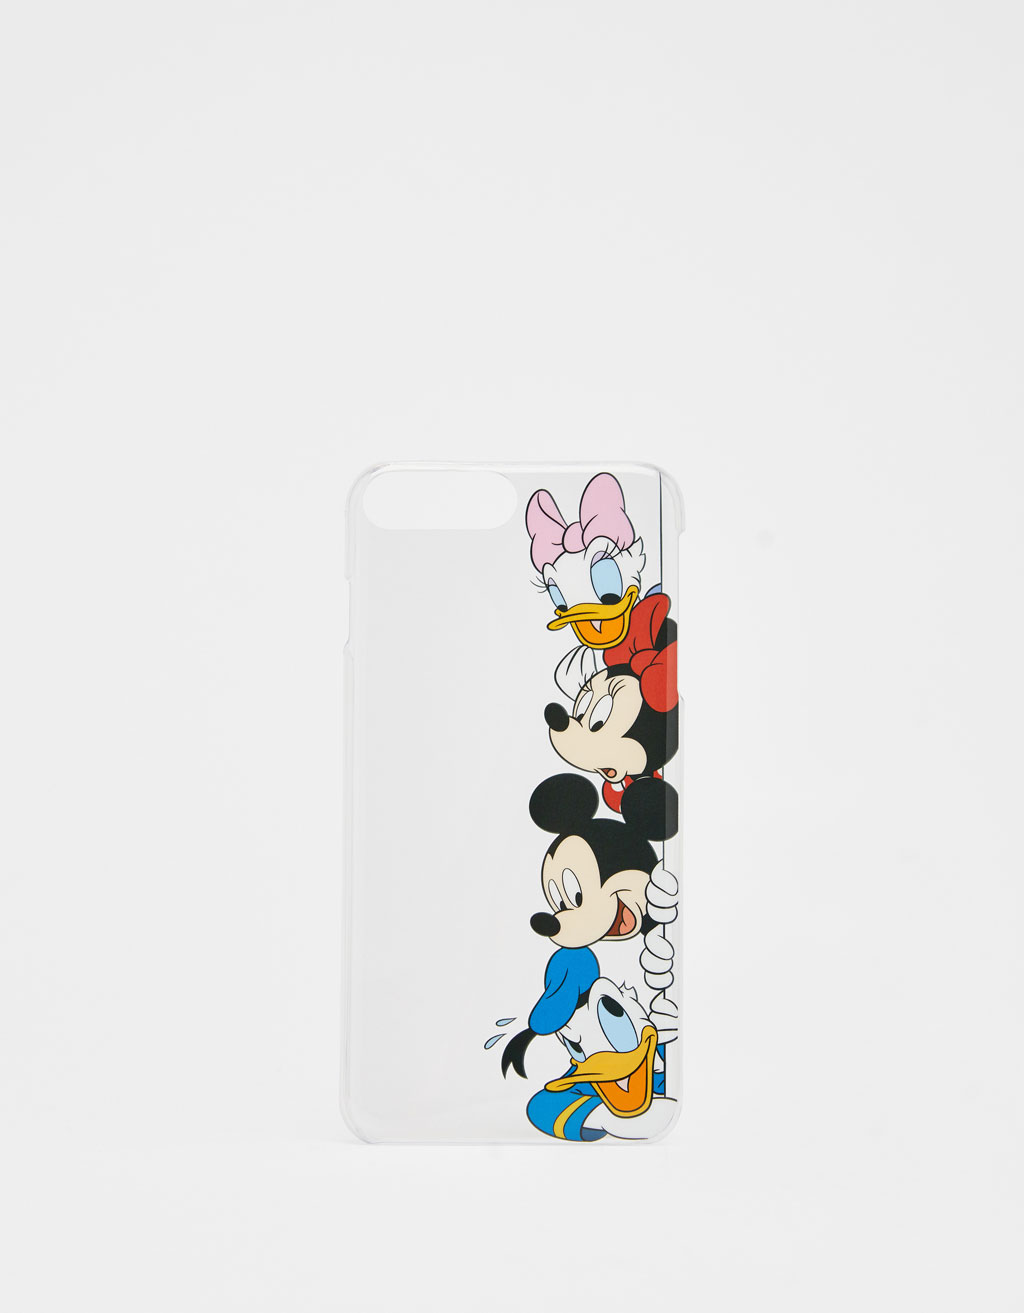 Disney hoesje voor iPhone 6 plus/7 plus/8 plus